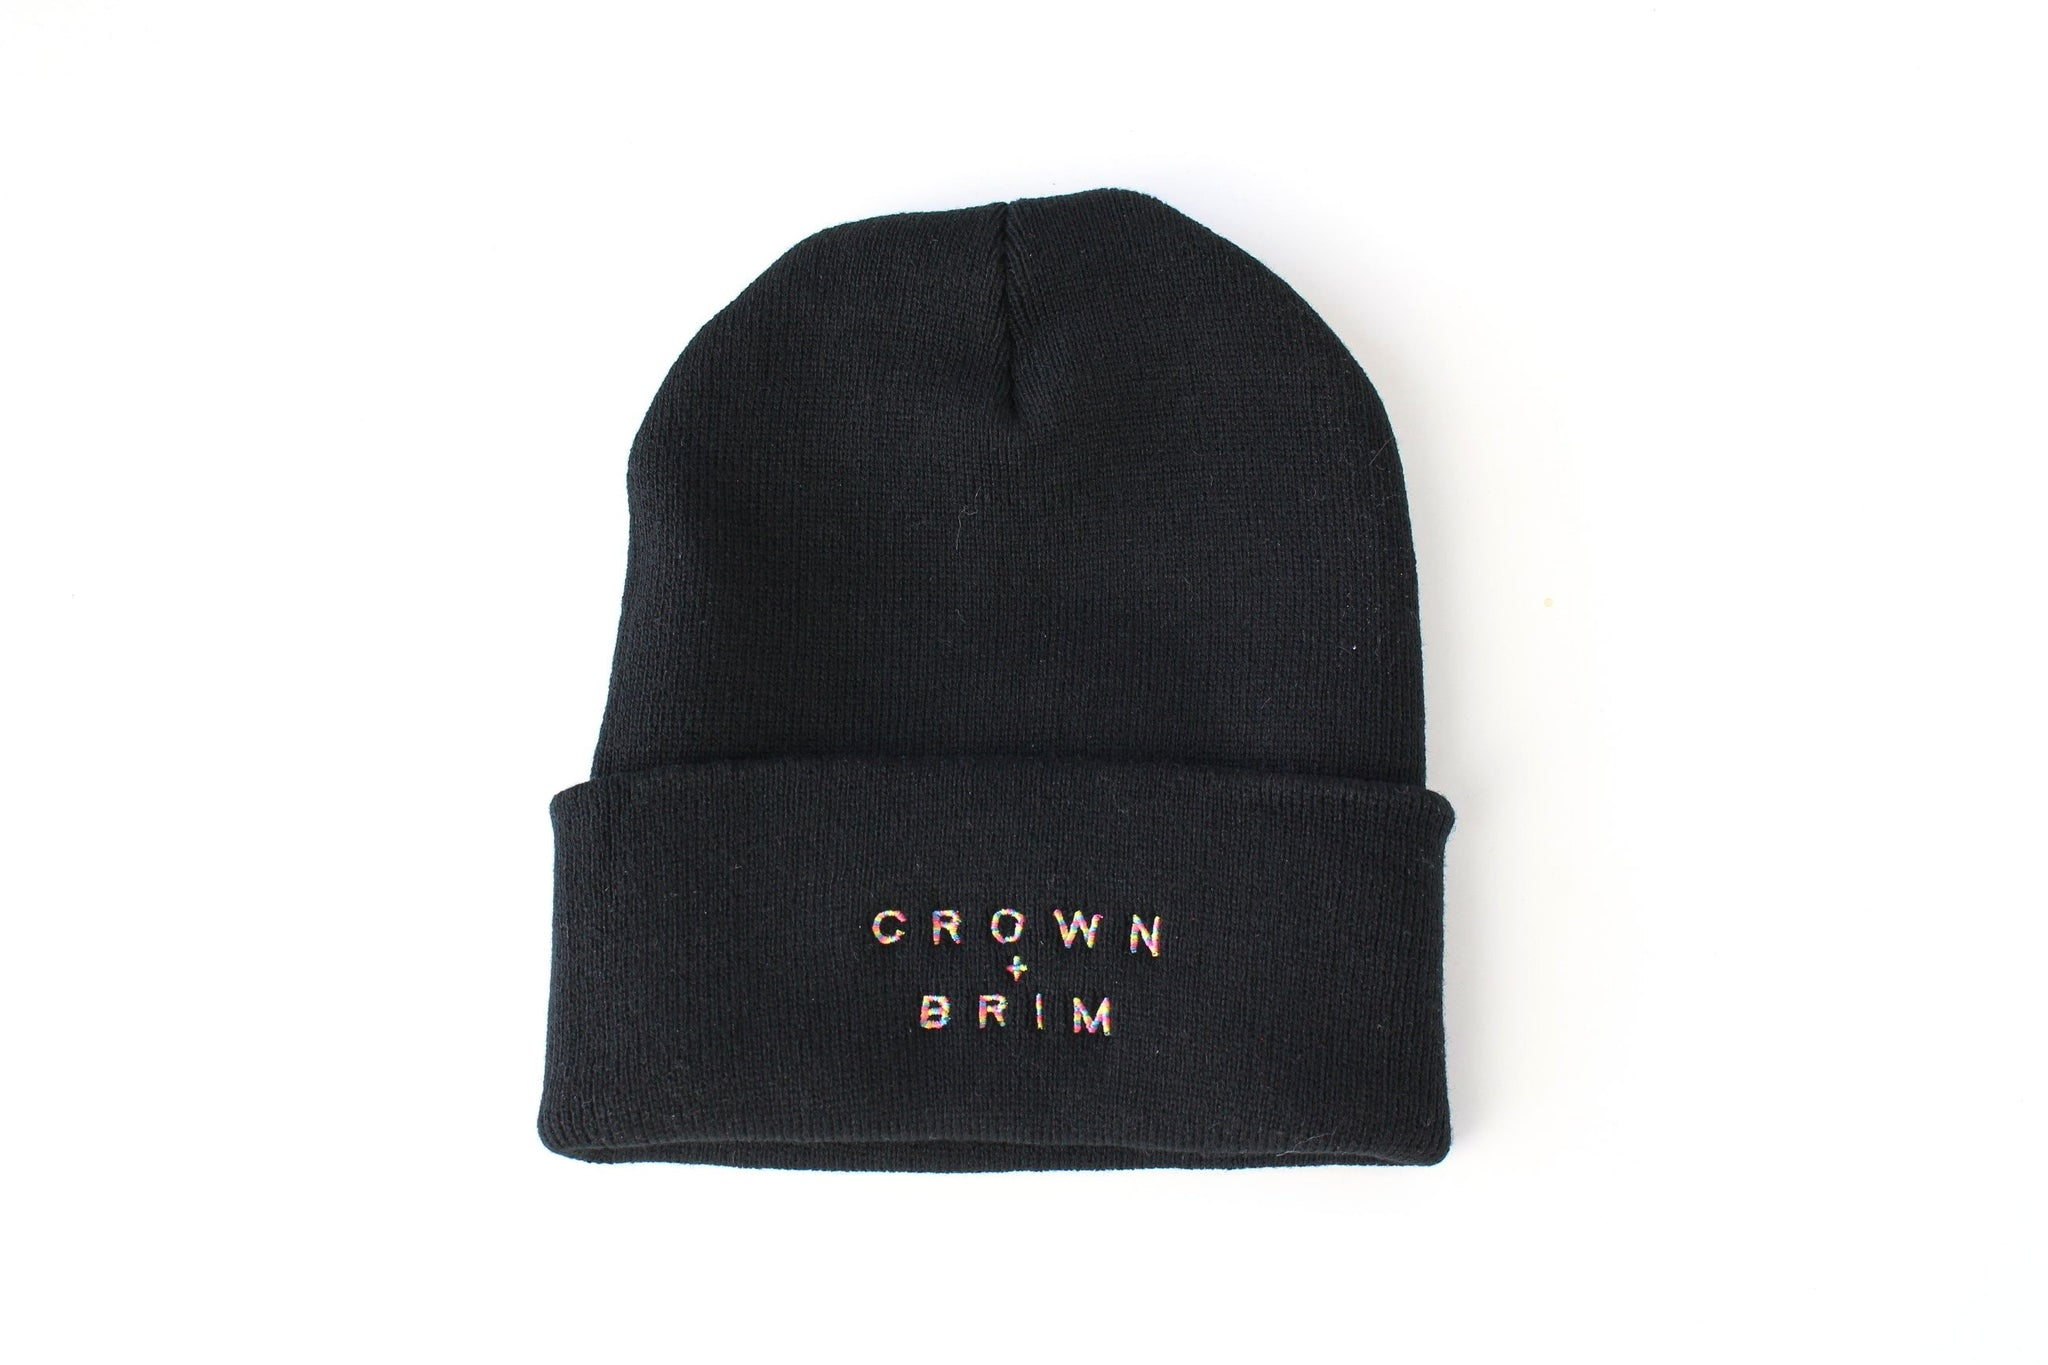 Crown + Brim Beanie - Black + Warm Marble